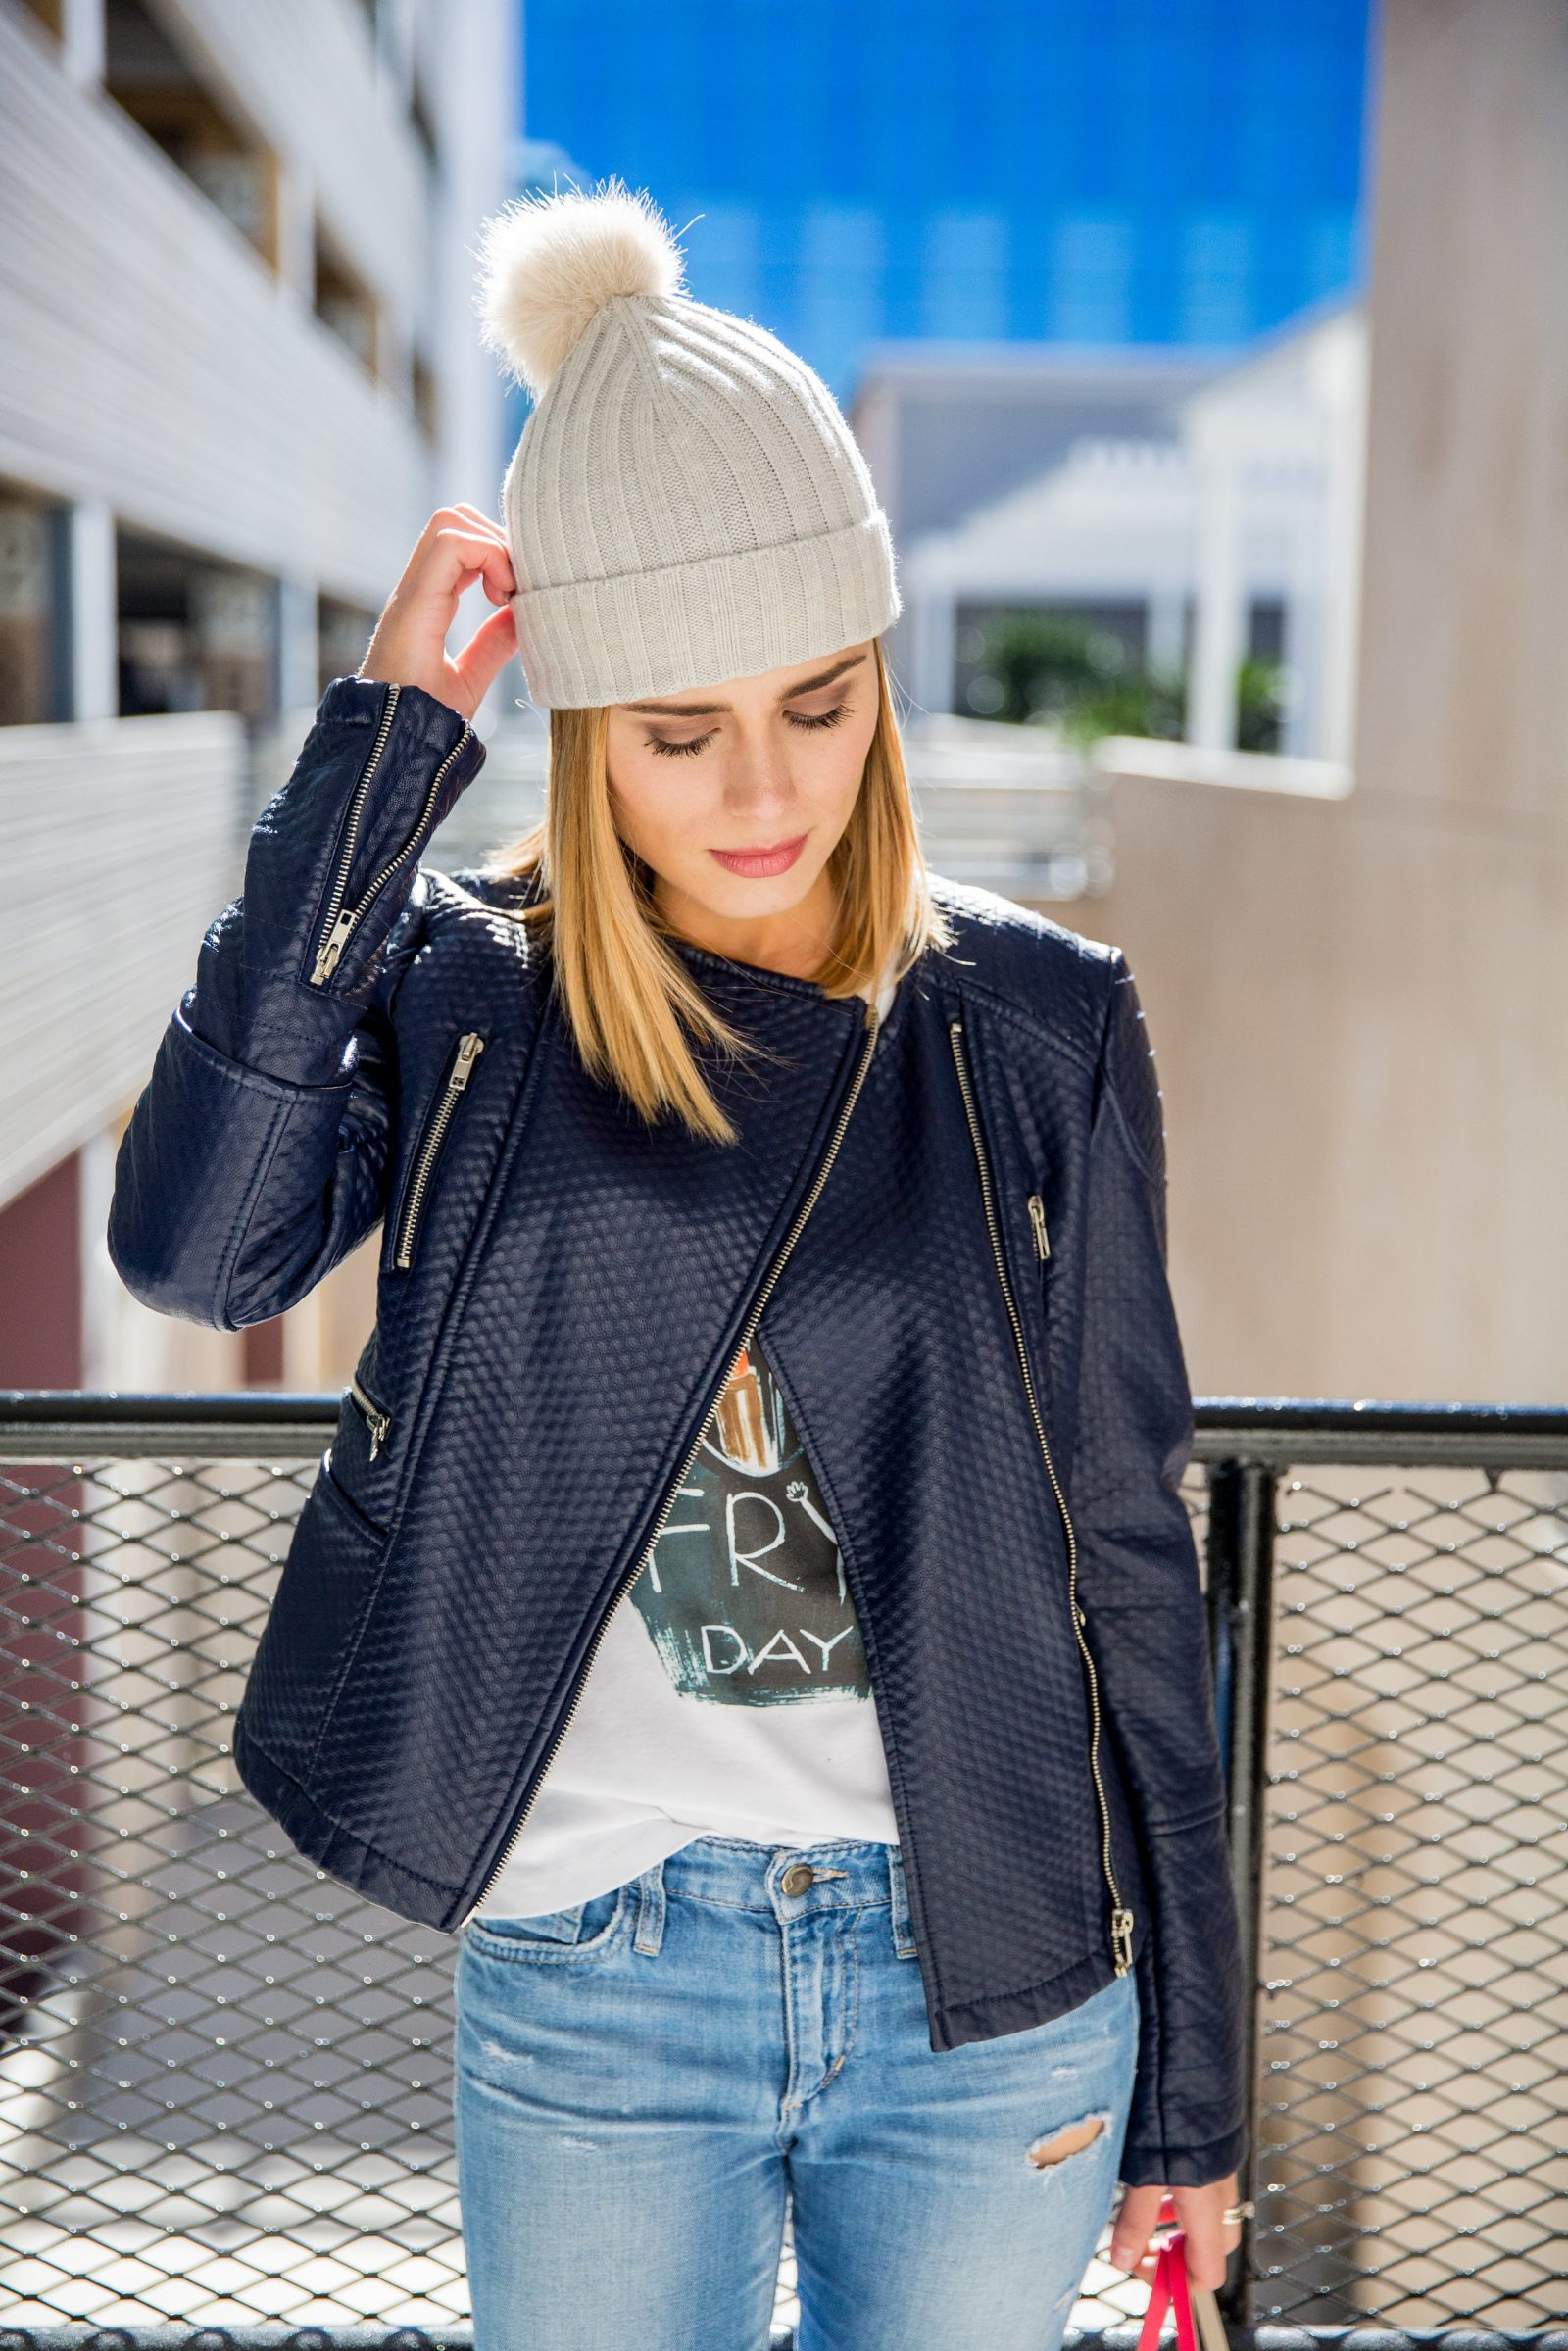 Houston fashion blogger Uptown with Elly Brown wears a blue leather motto jacket